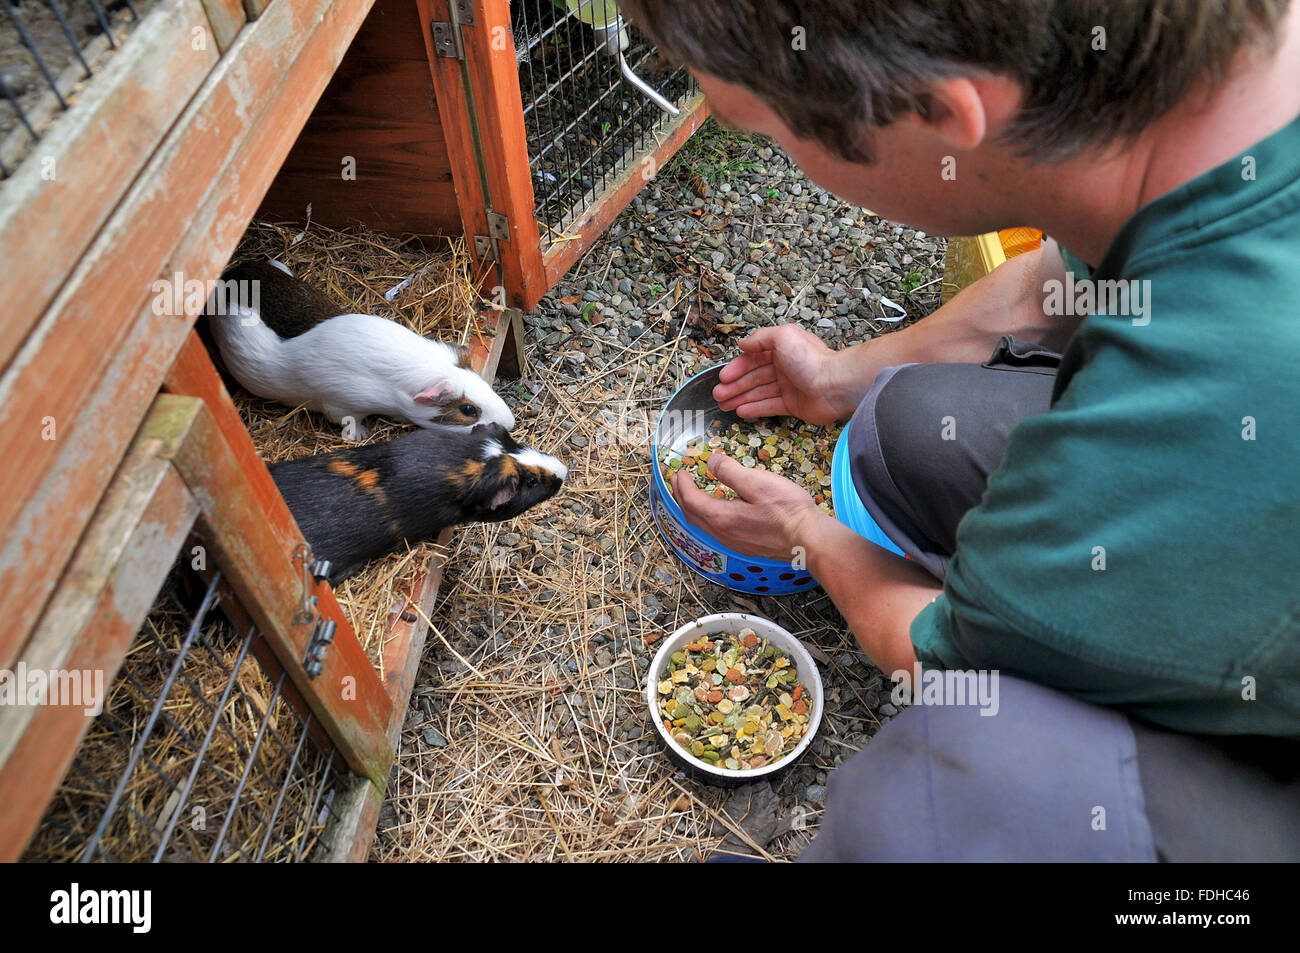 A teenage boy fills the food dish for 2 guinea pigs in their hutch. - Stock Image